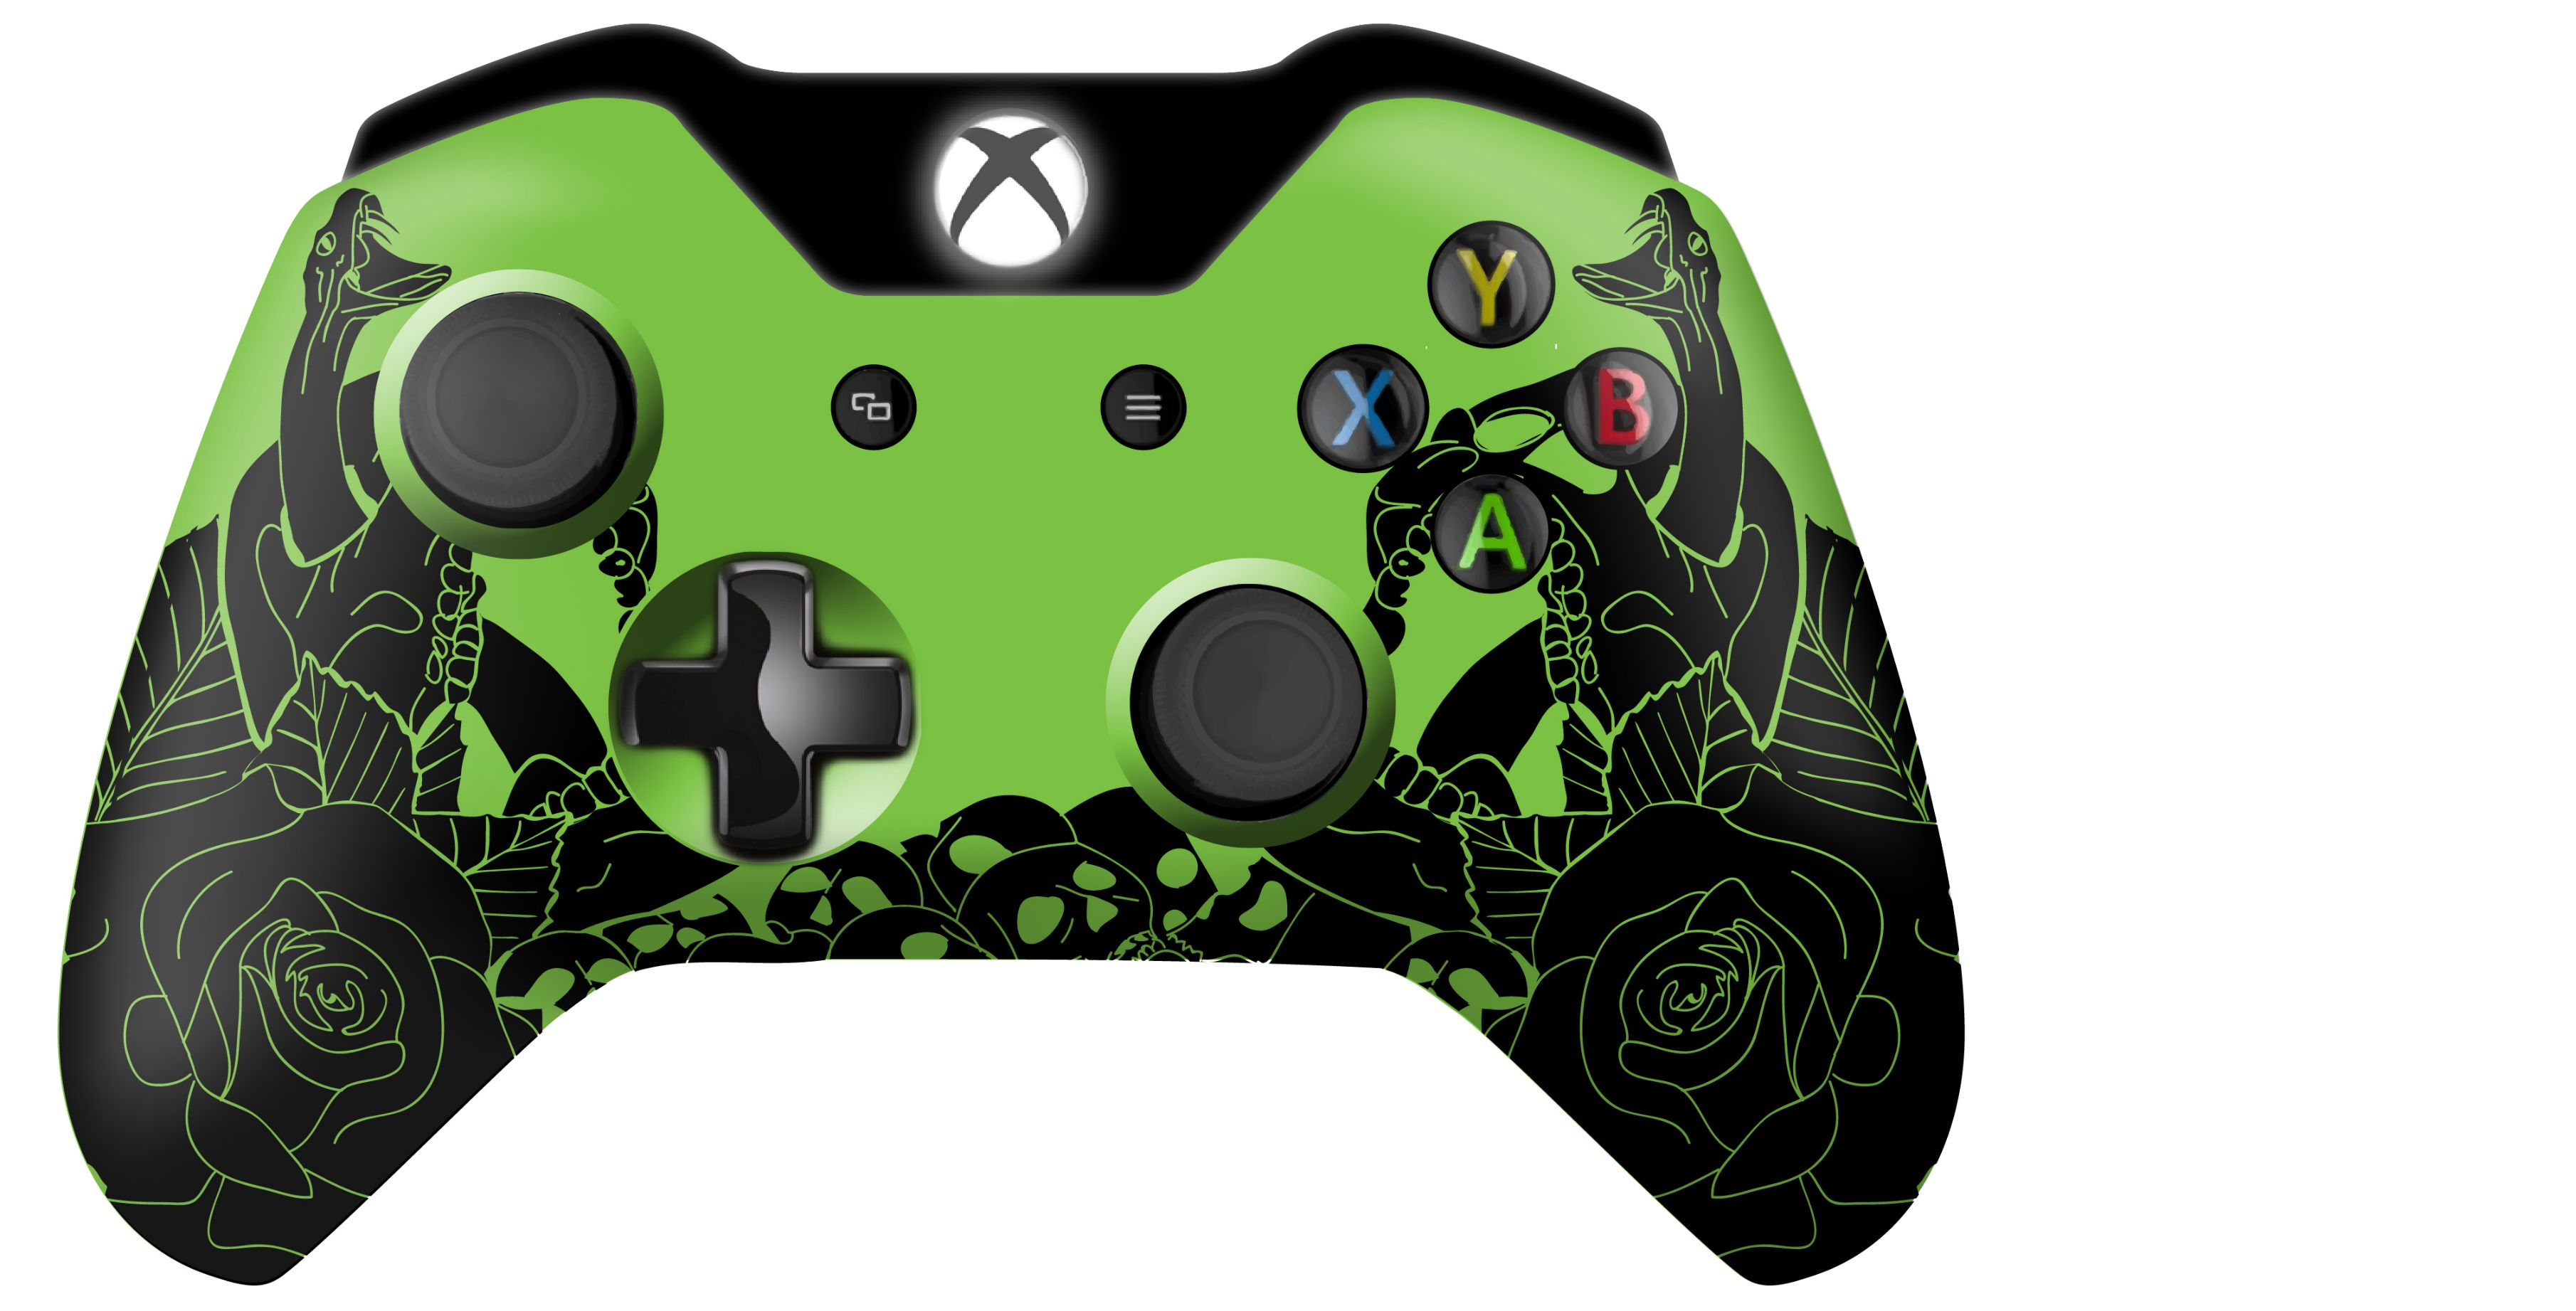 xbox one controller drawing at getdrawings com free for personal